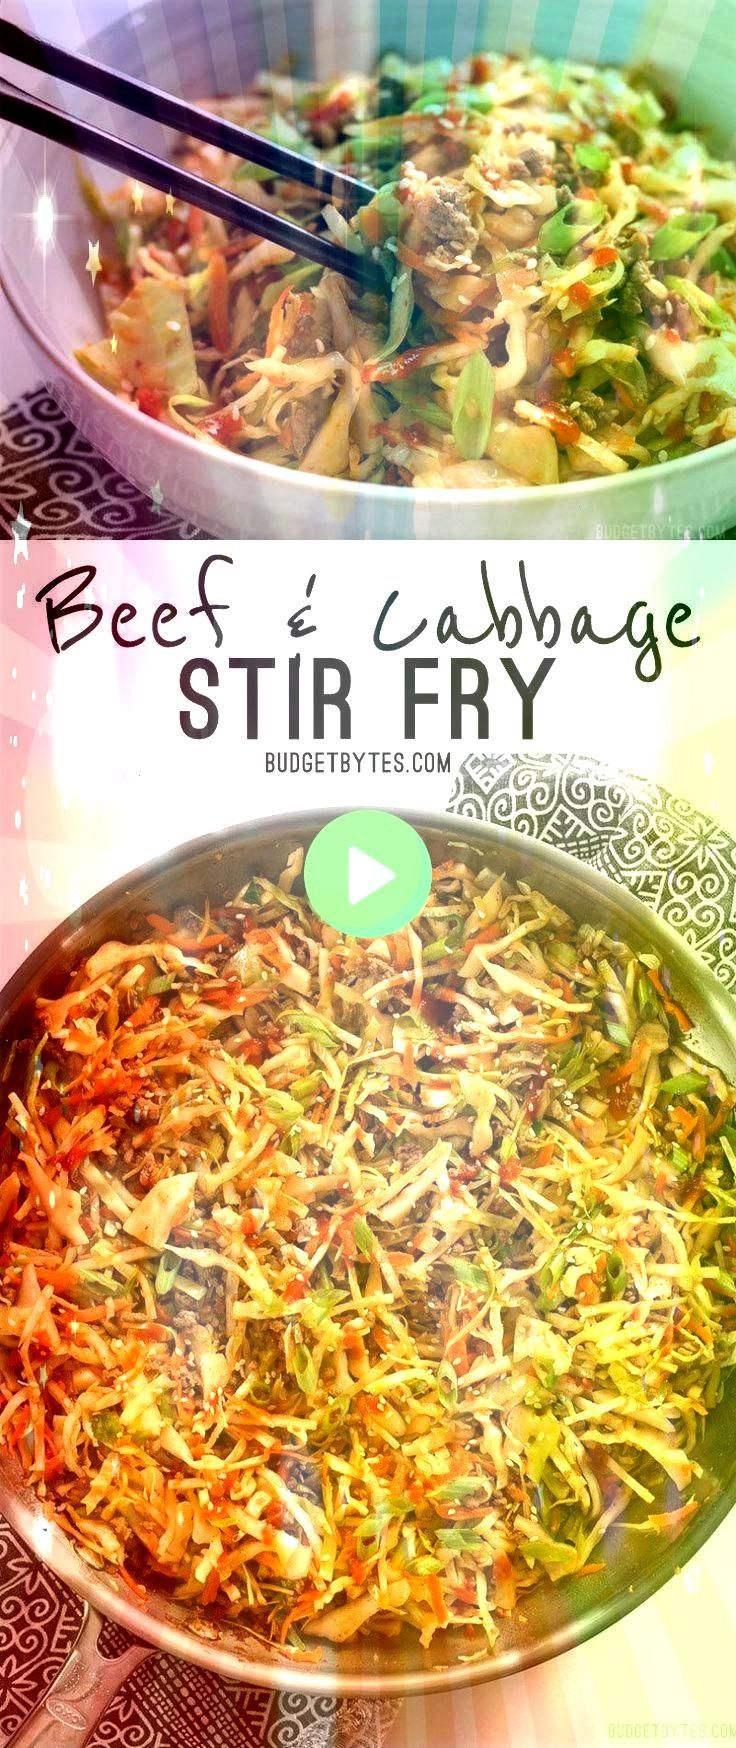 fast and easy Beef and Cabbage Stir Fry is a filling low carb dinner with big flavorThis fast and easy Beef and Cabbage Stir Fry is a filling low carb dinner with big fla...